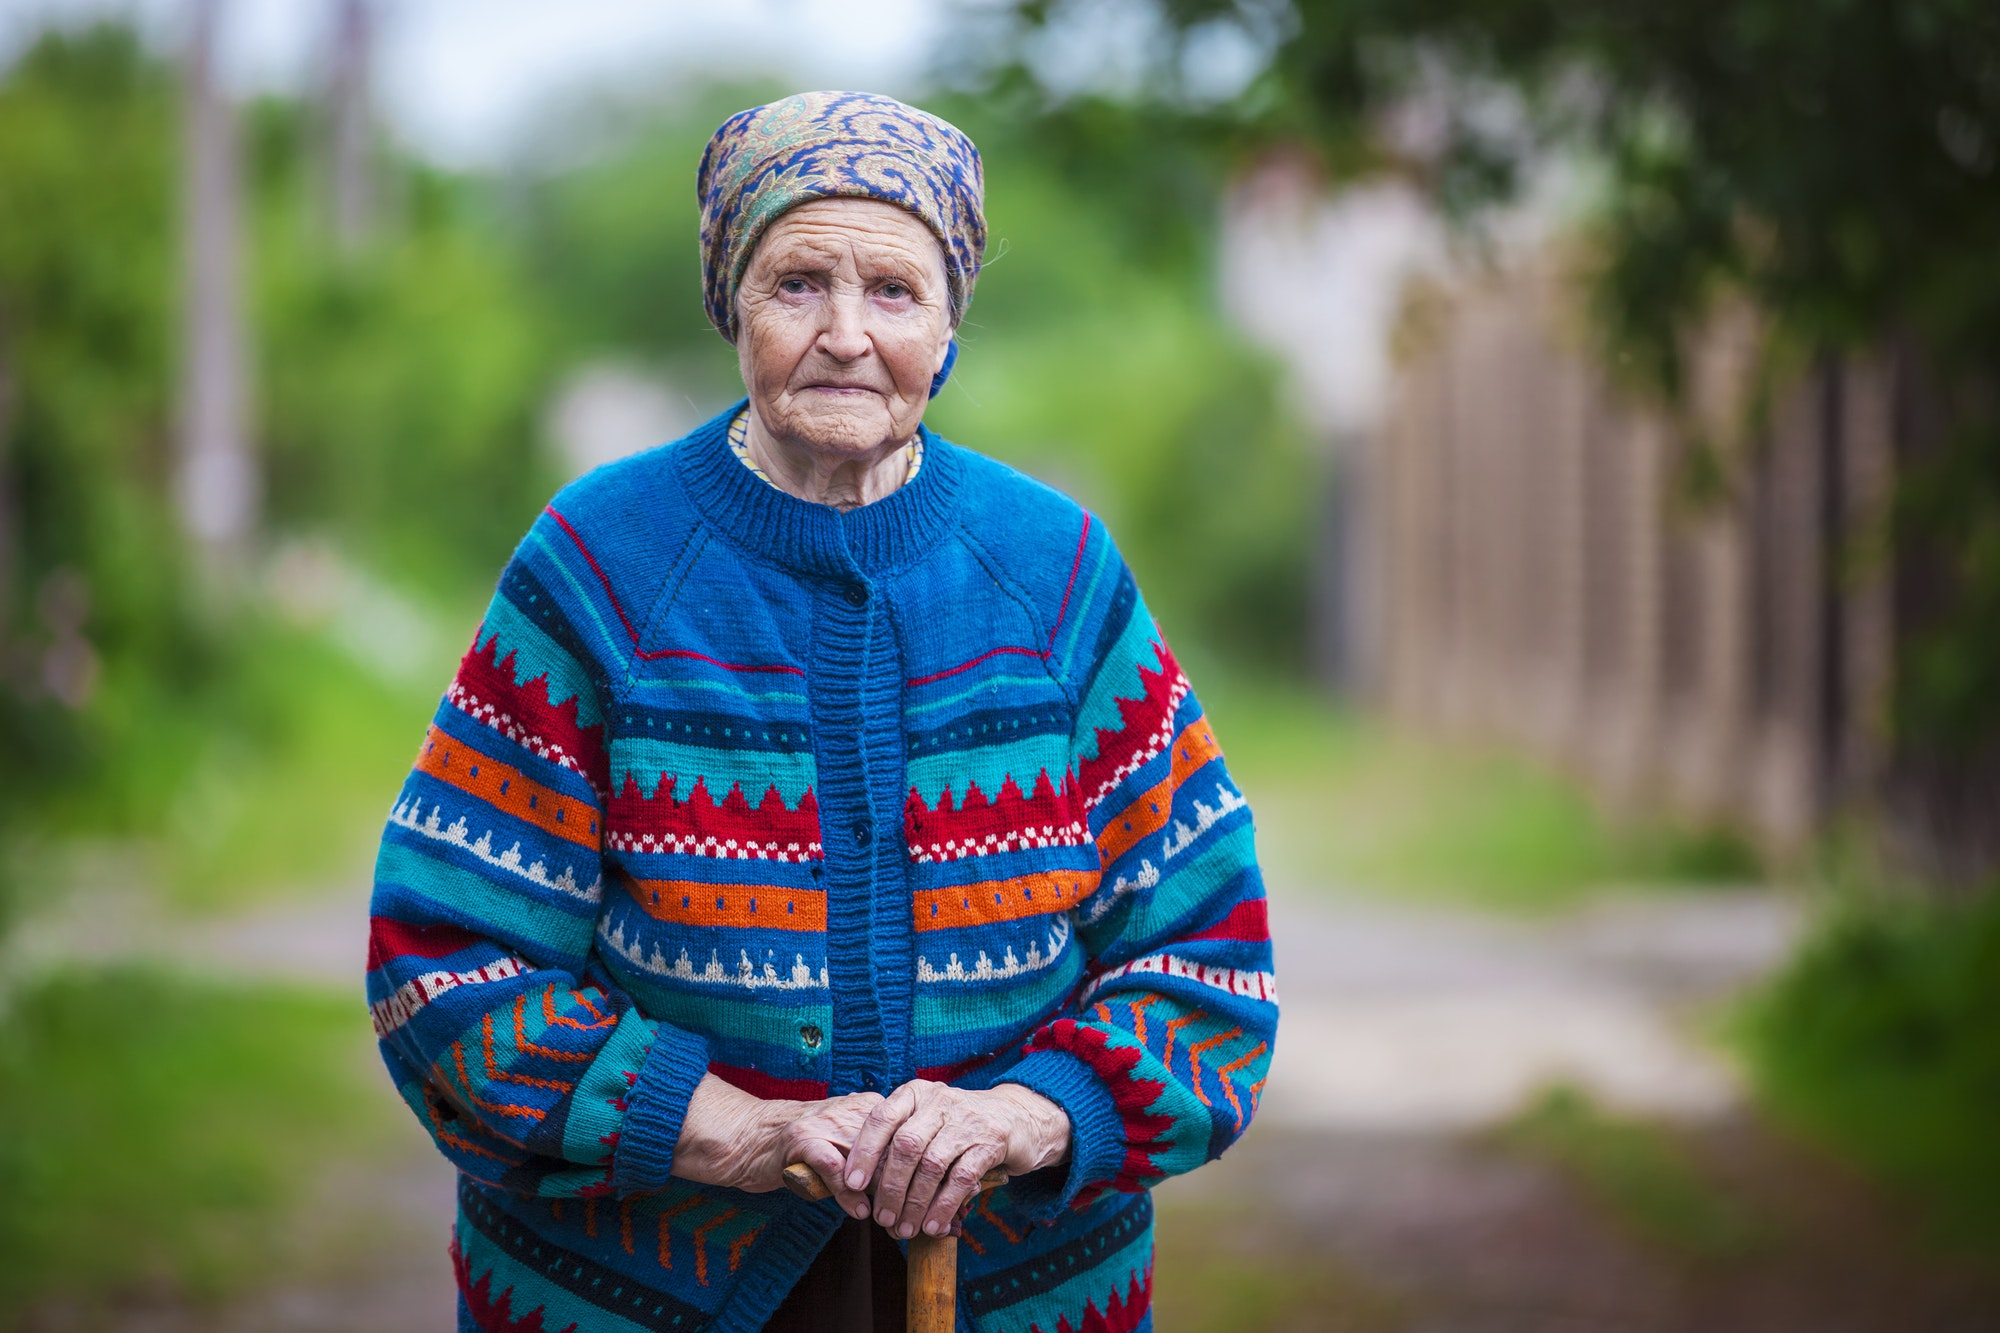 Portrait of an aged woman outdoors